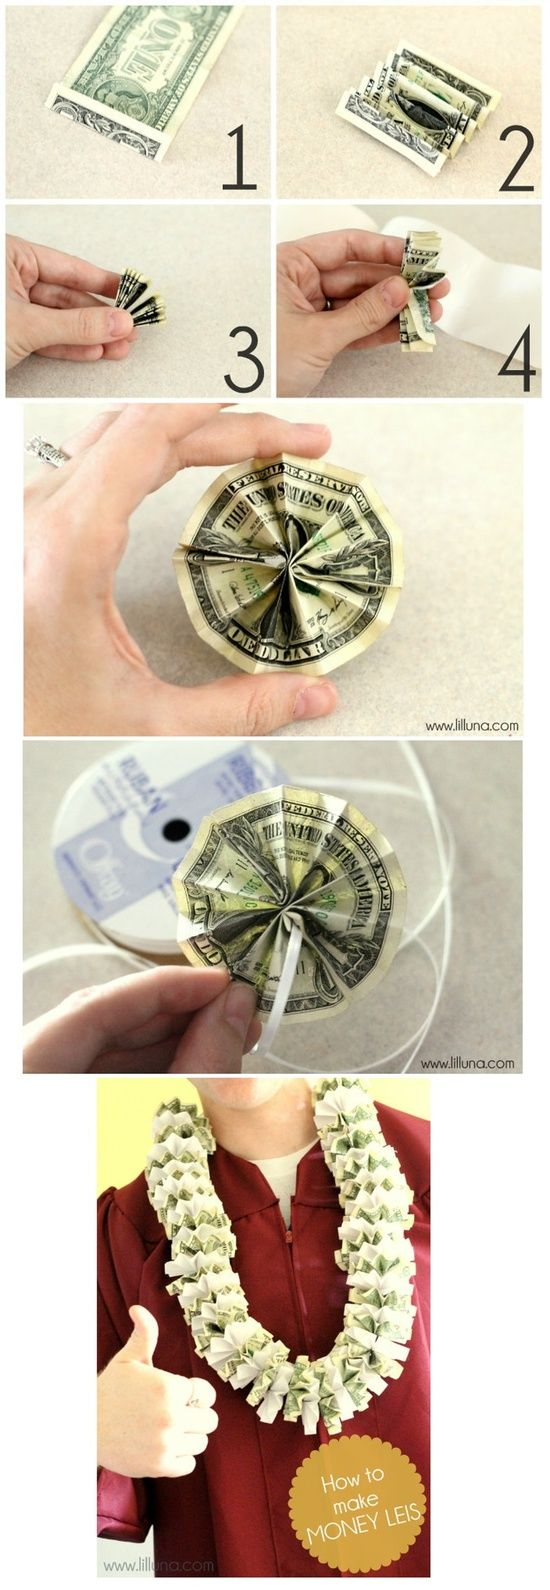 How To Make A Money Necklace : money, necklace